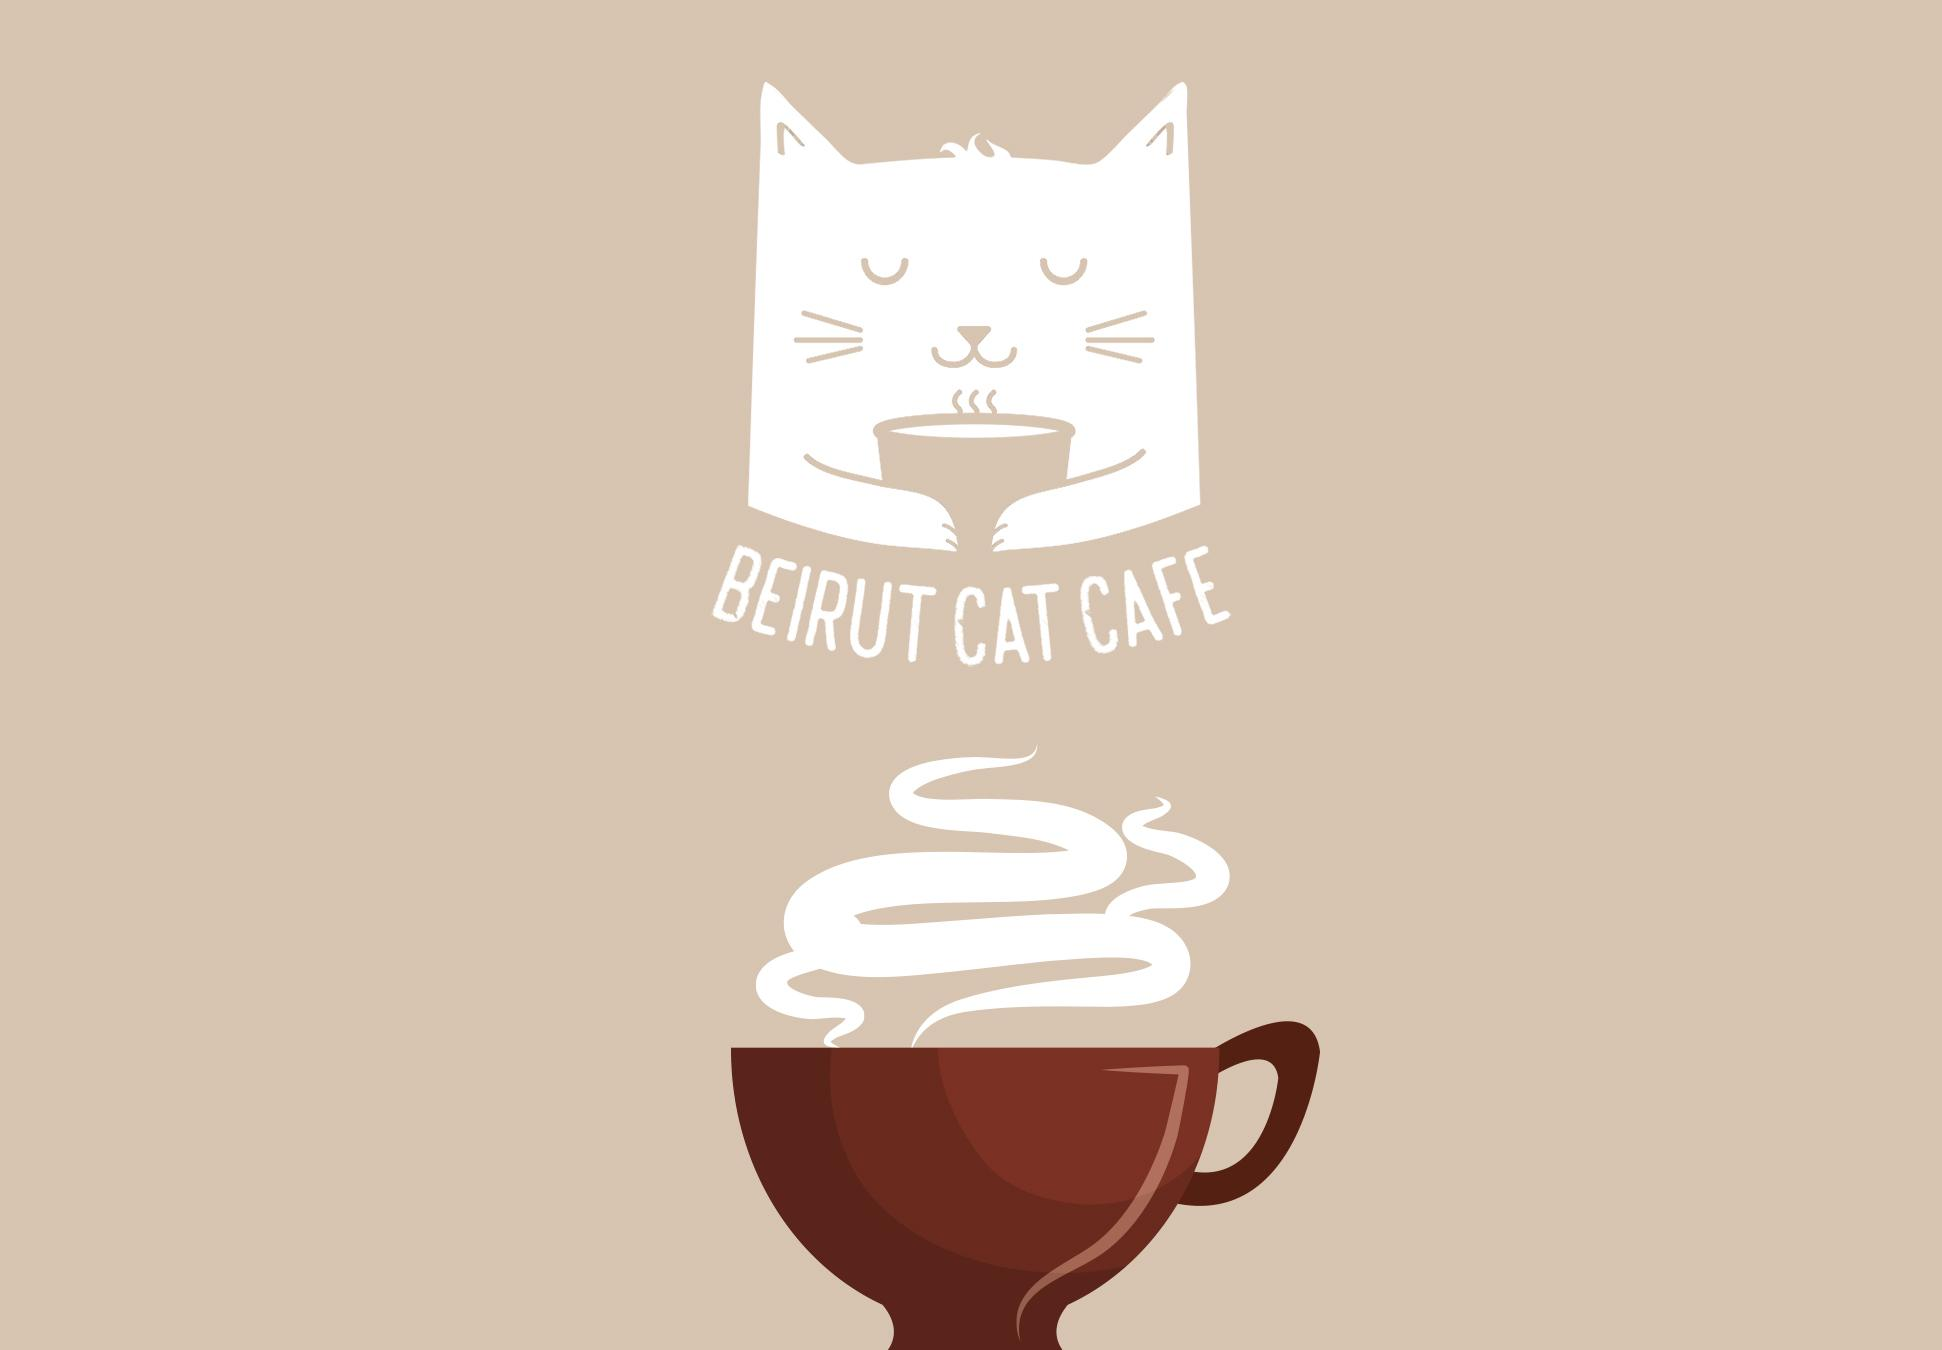 INTERNATIONAL CAT DAY X BEIRUT CAT CAFE - News